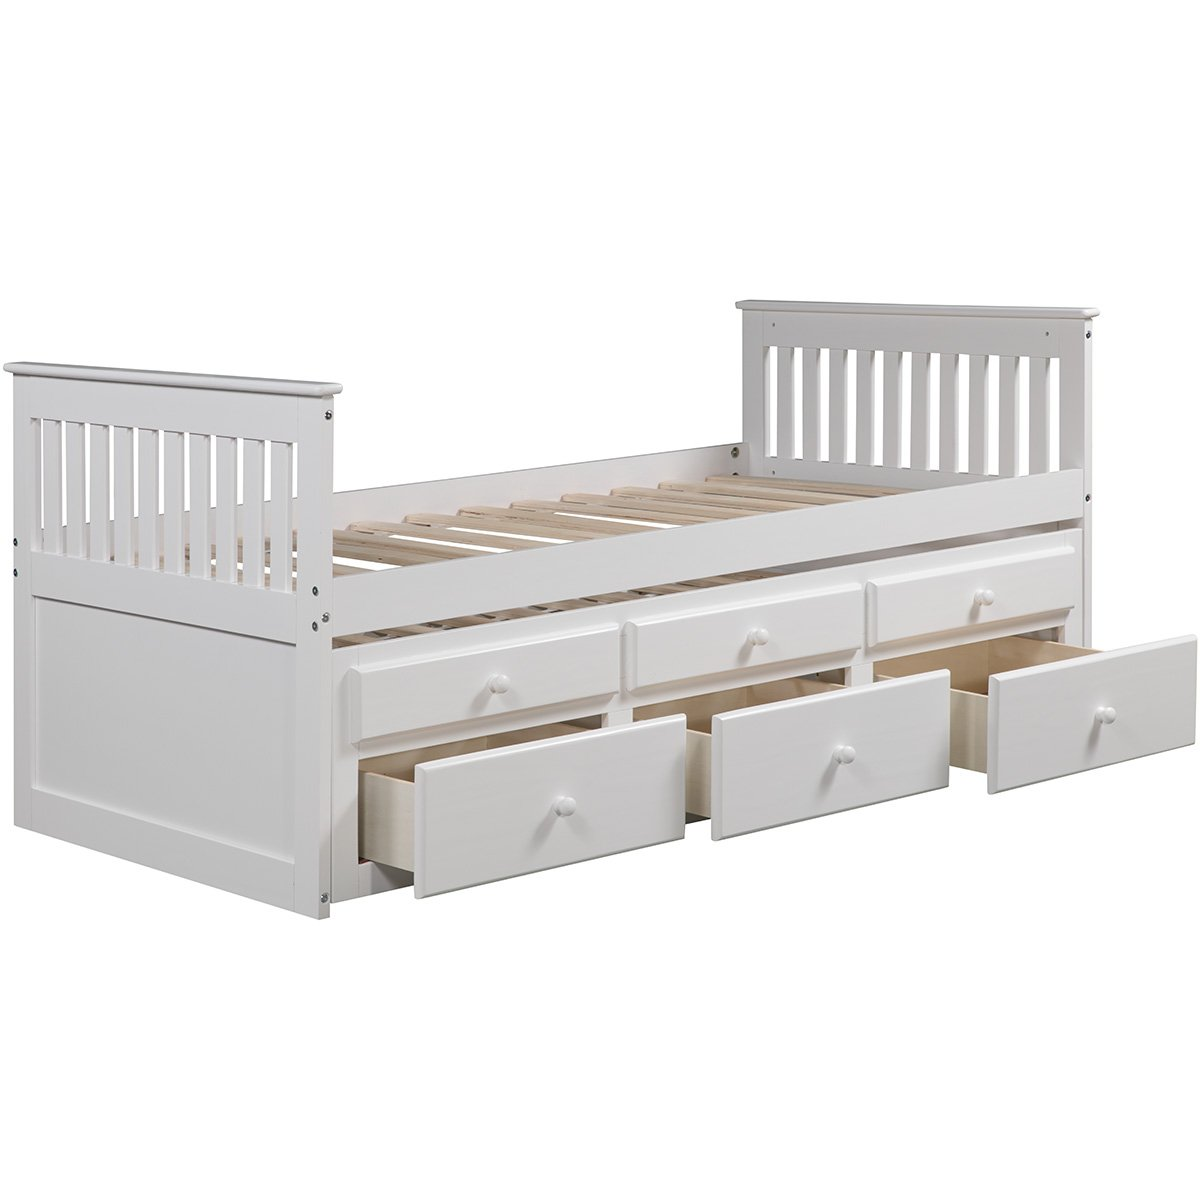 Captains Daybed Trundle Storage Drawers